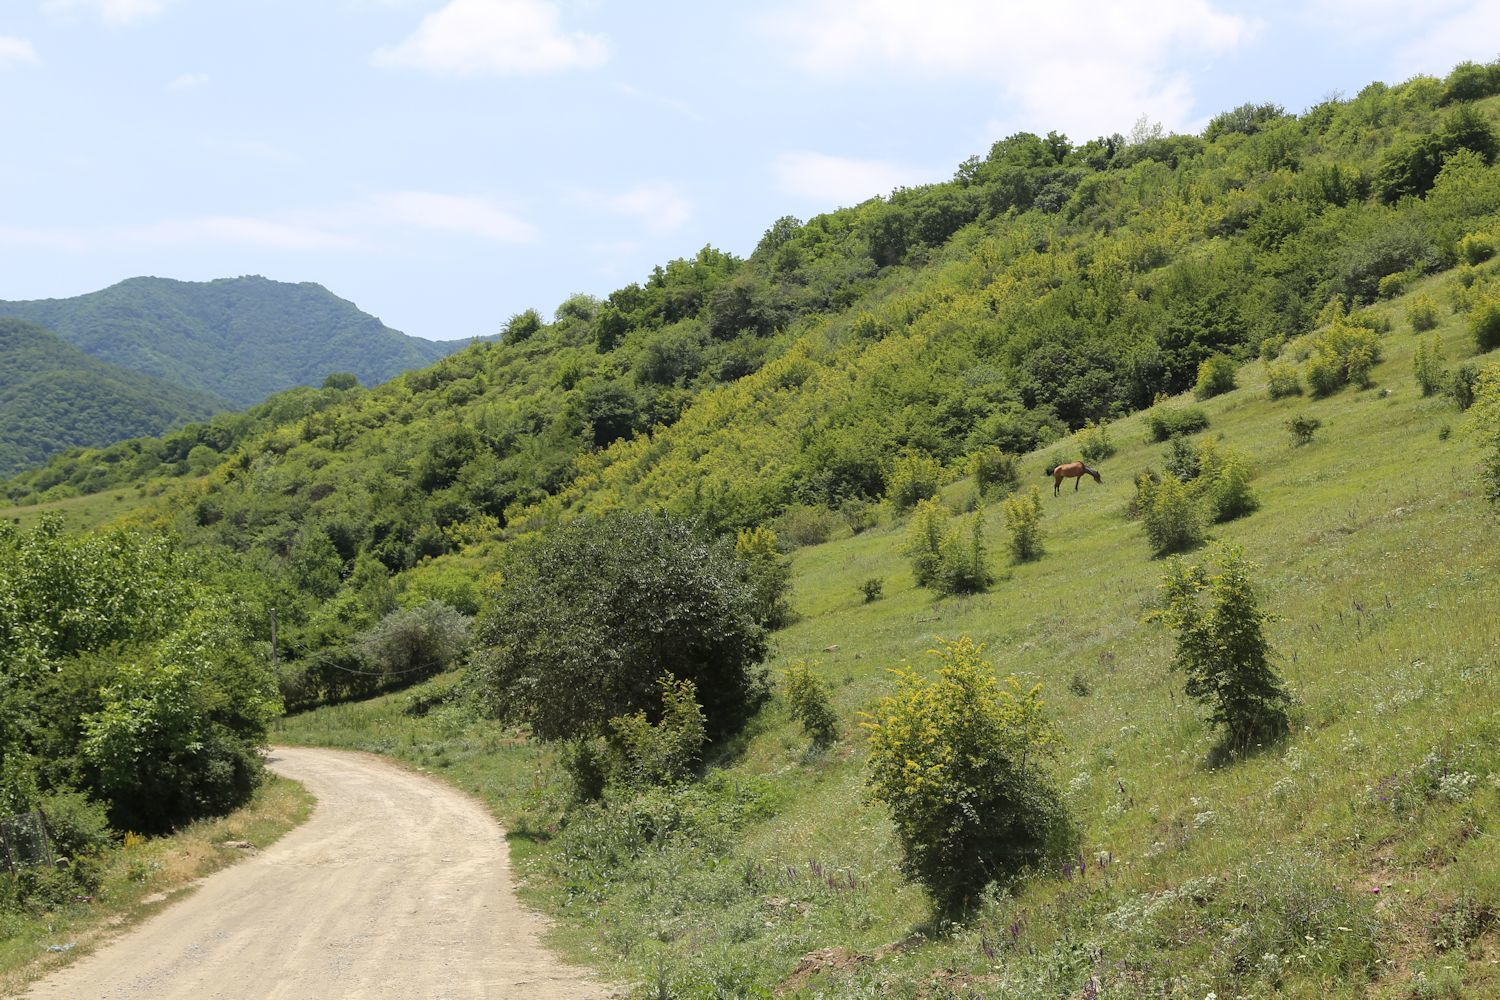 On our way to Didgori